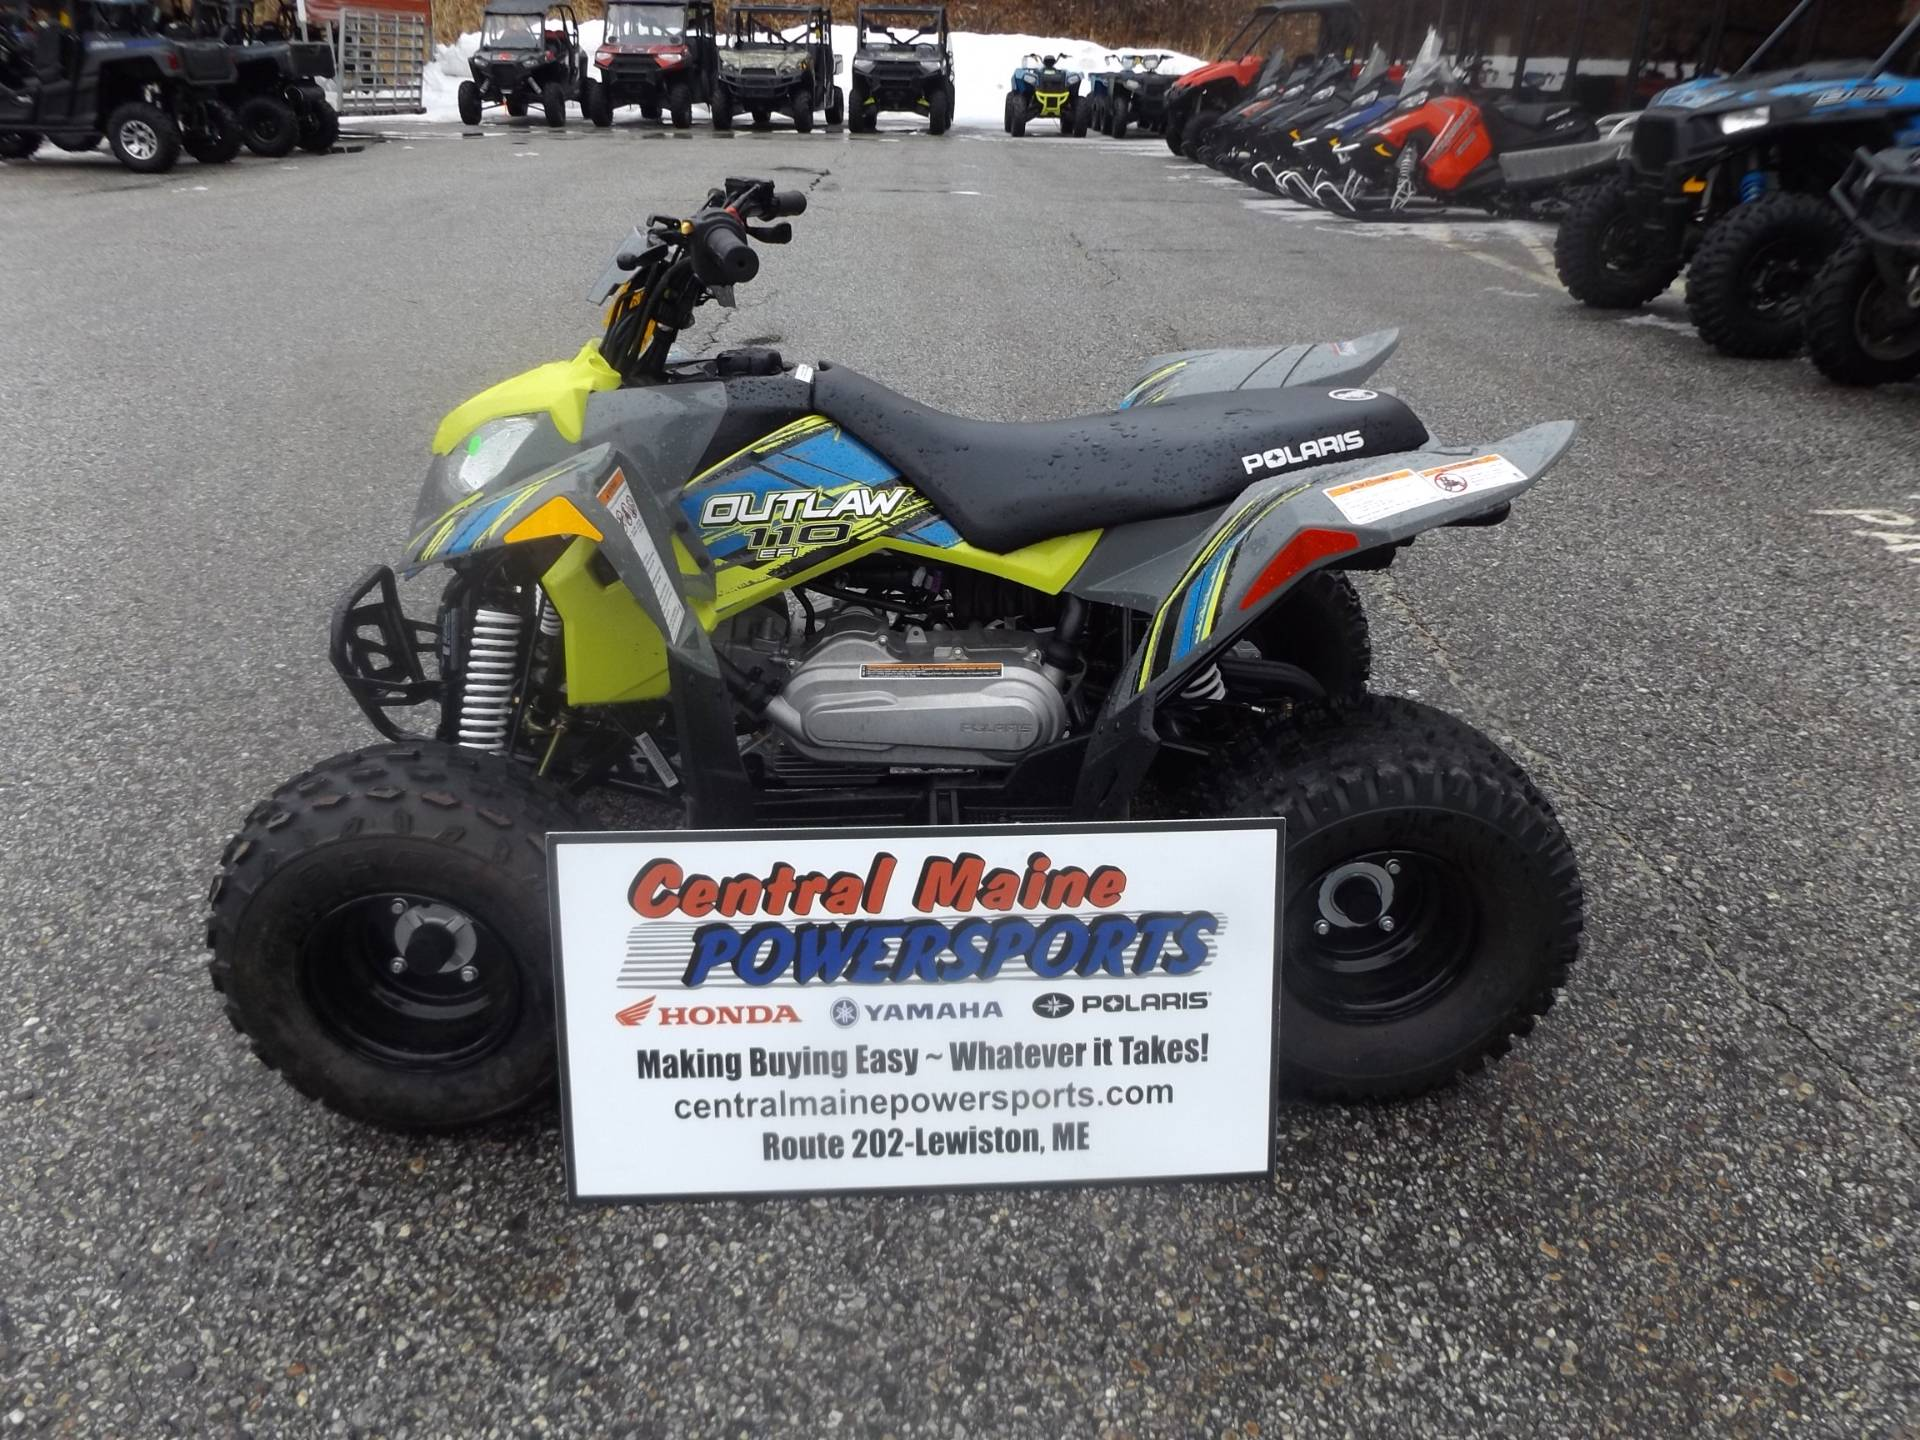 2017 Polaris Outlaw 110 in Lewiston, Maine